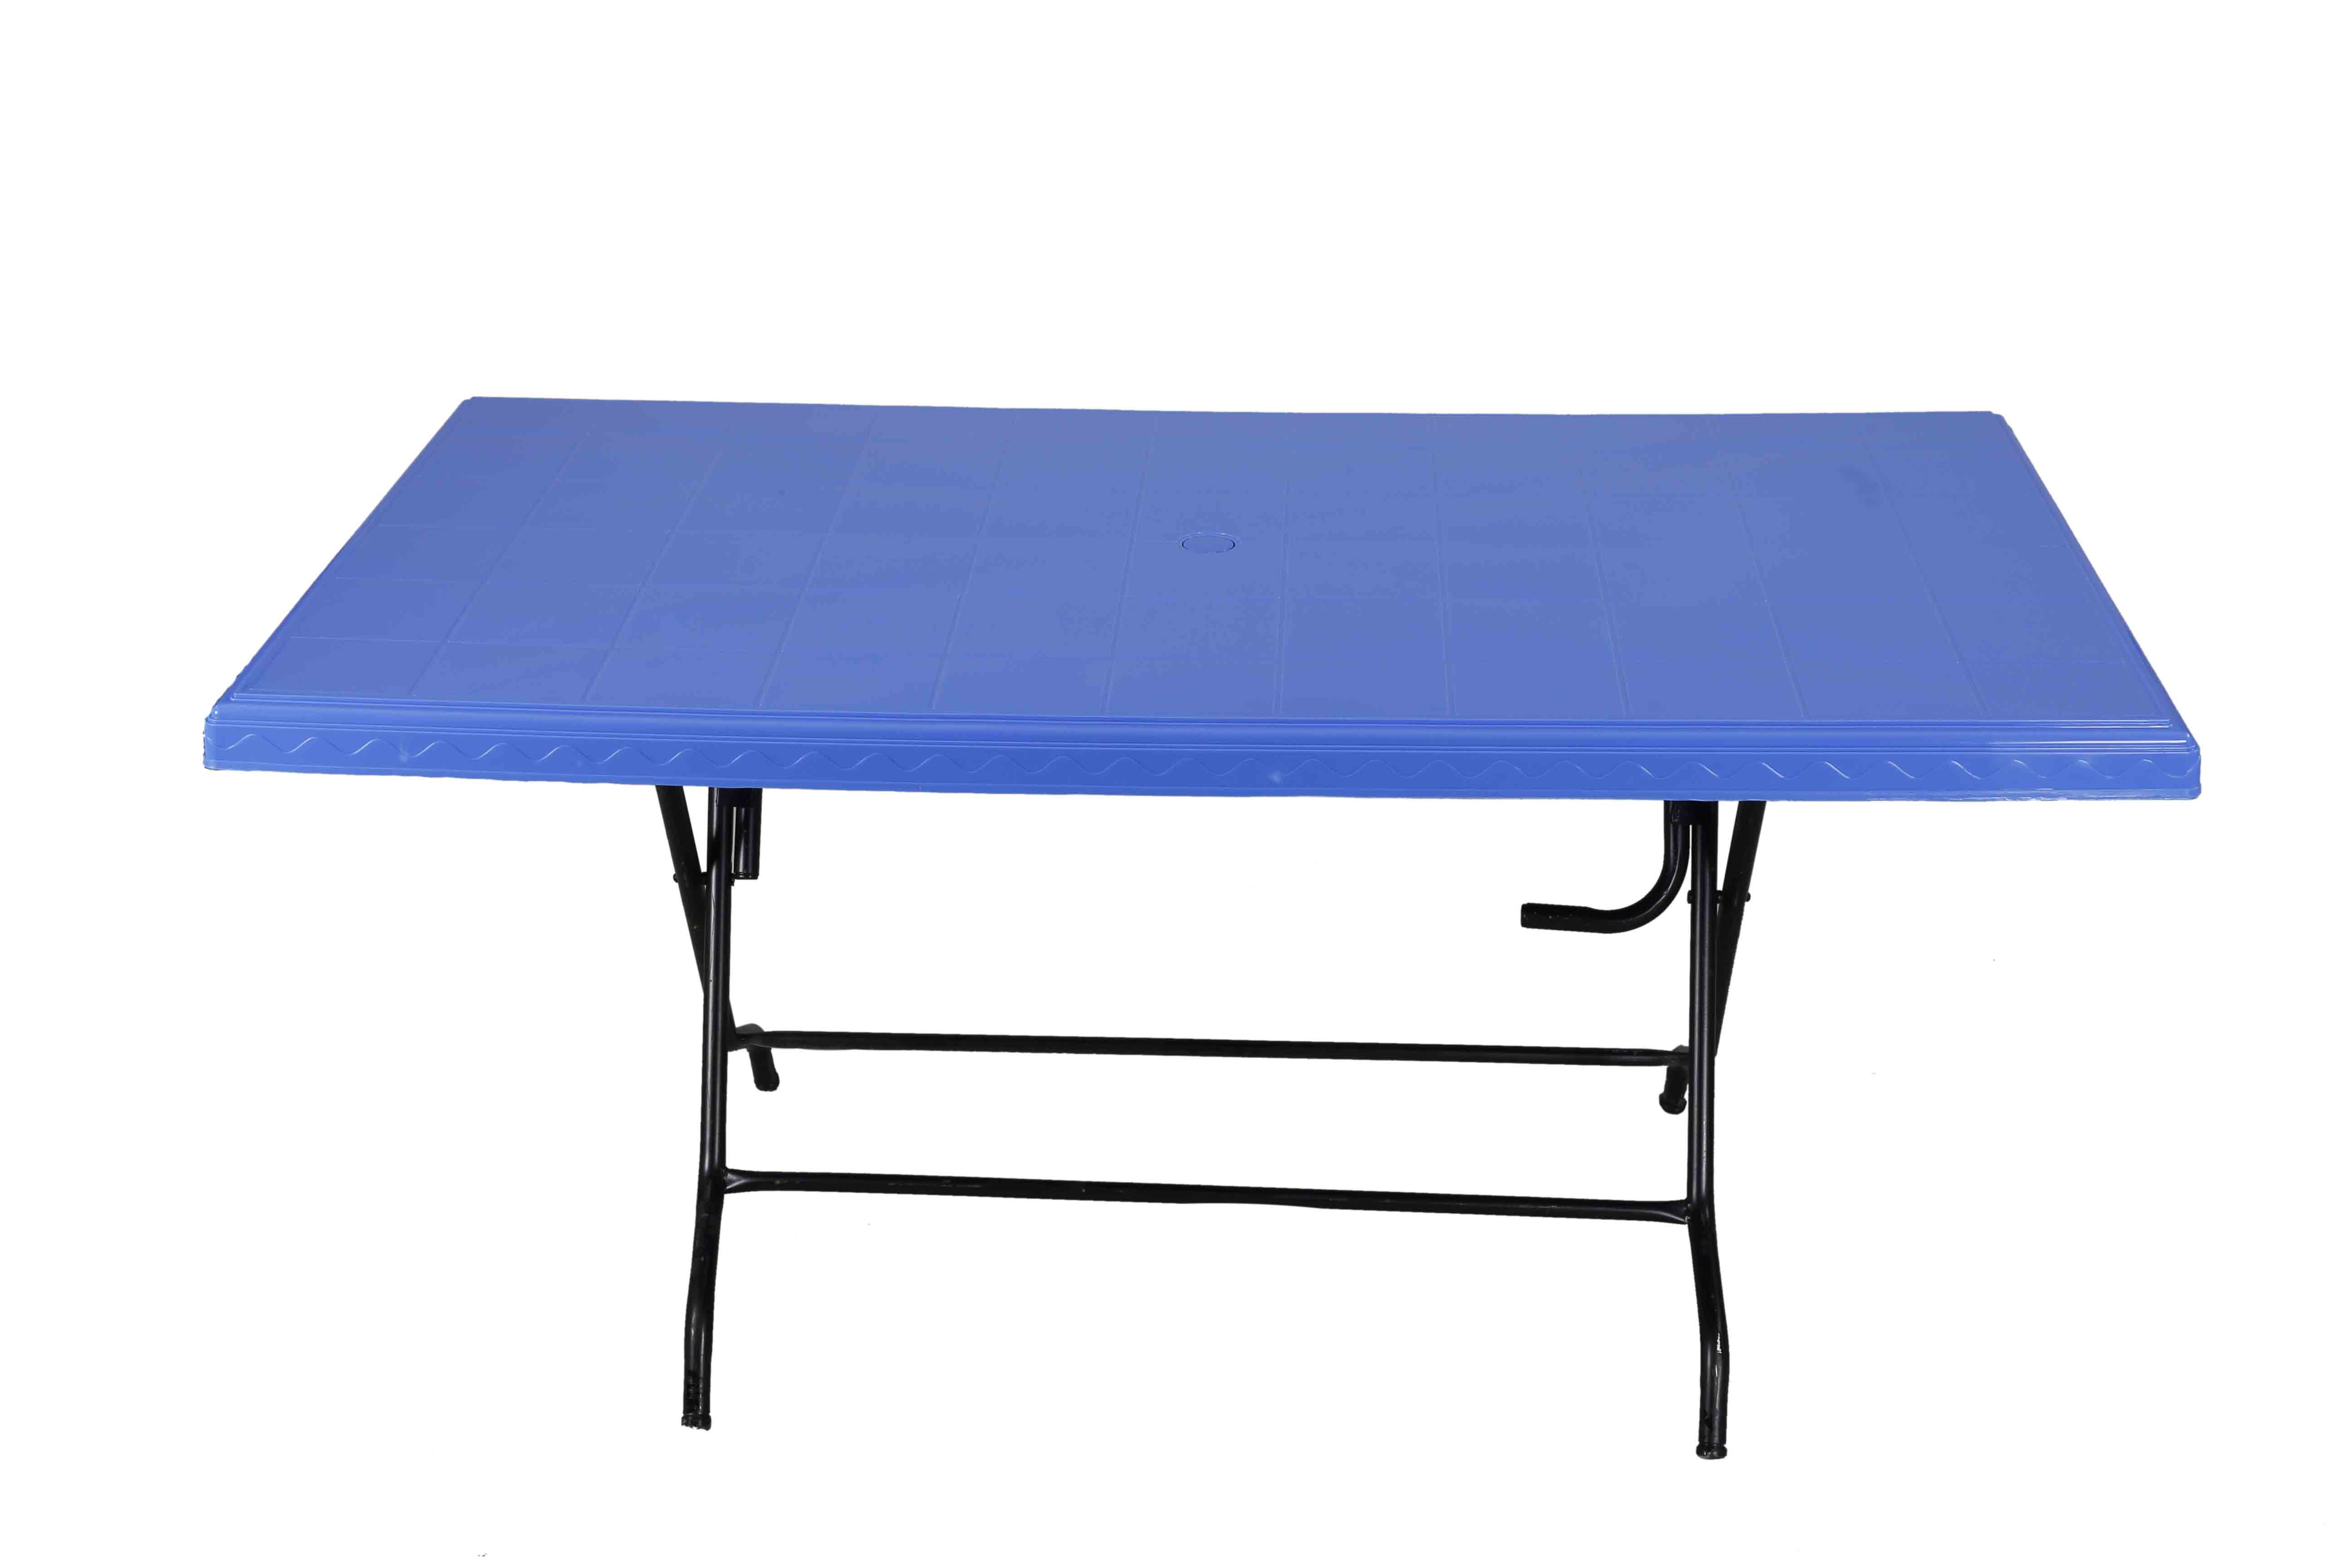 Decorate Table 6 Seated St/Leg – SM Blue